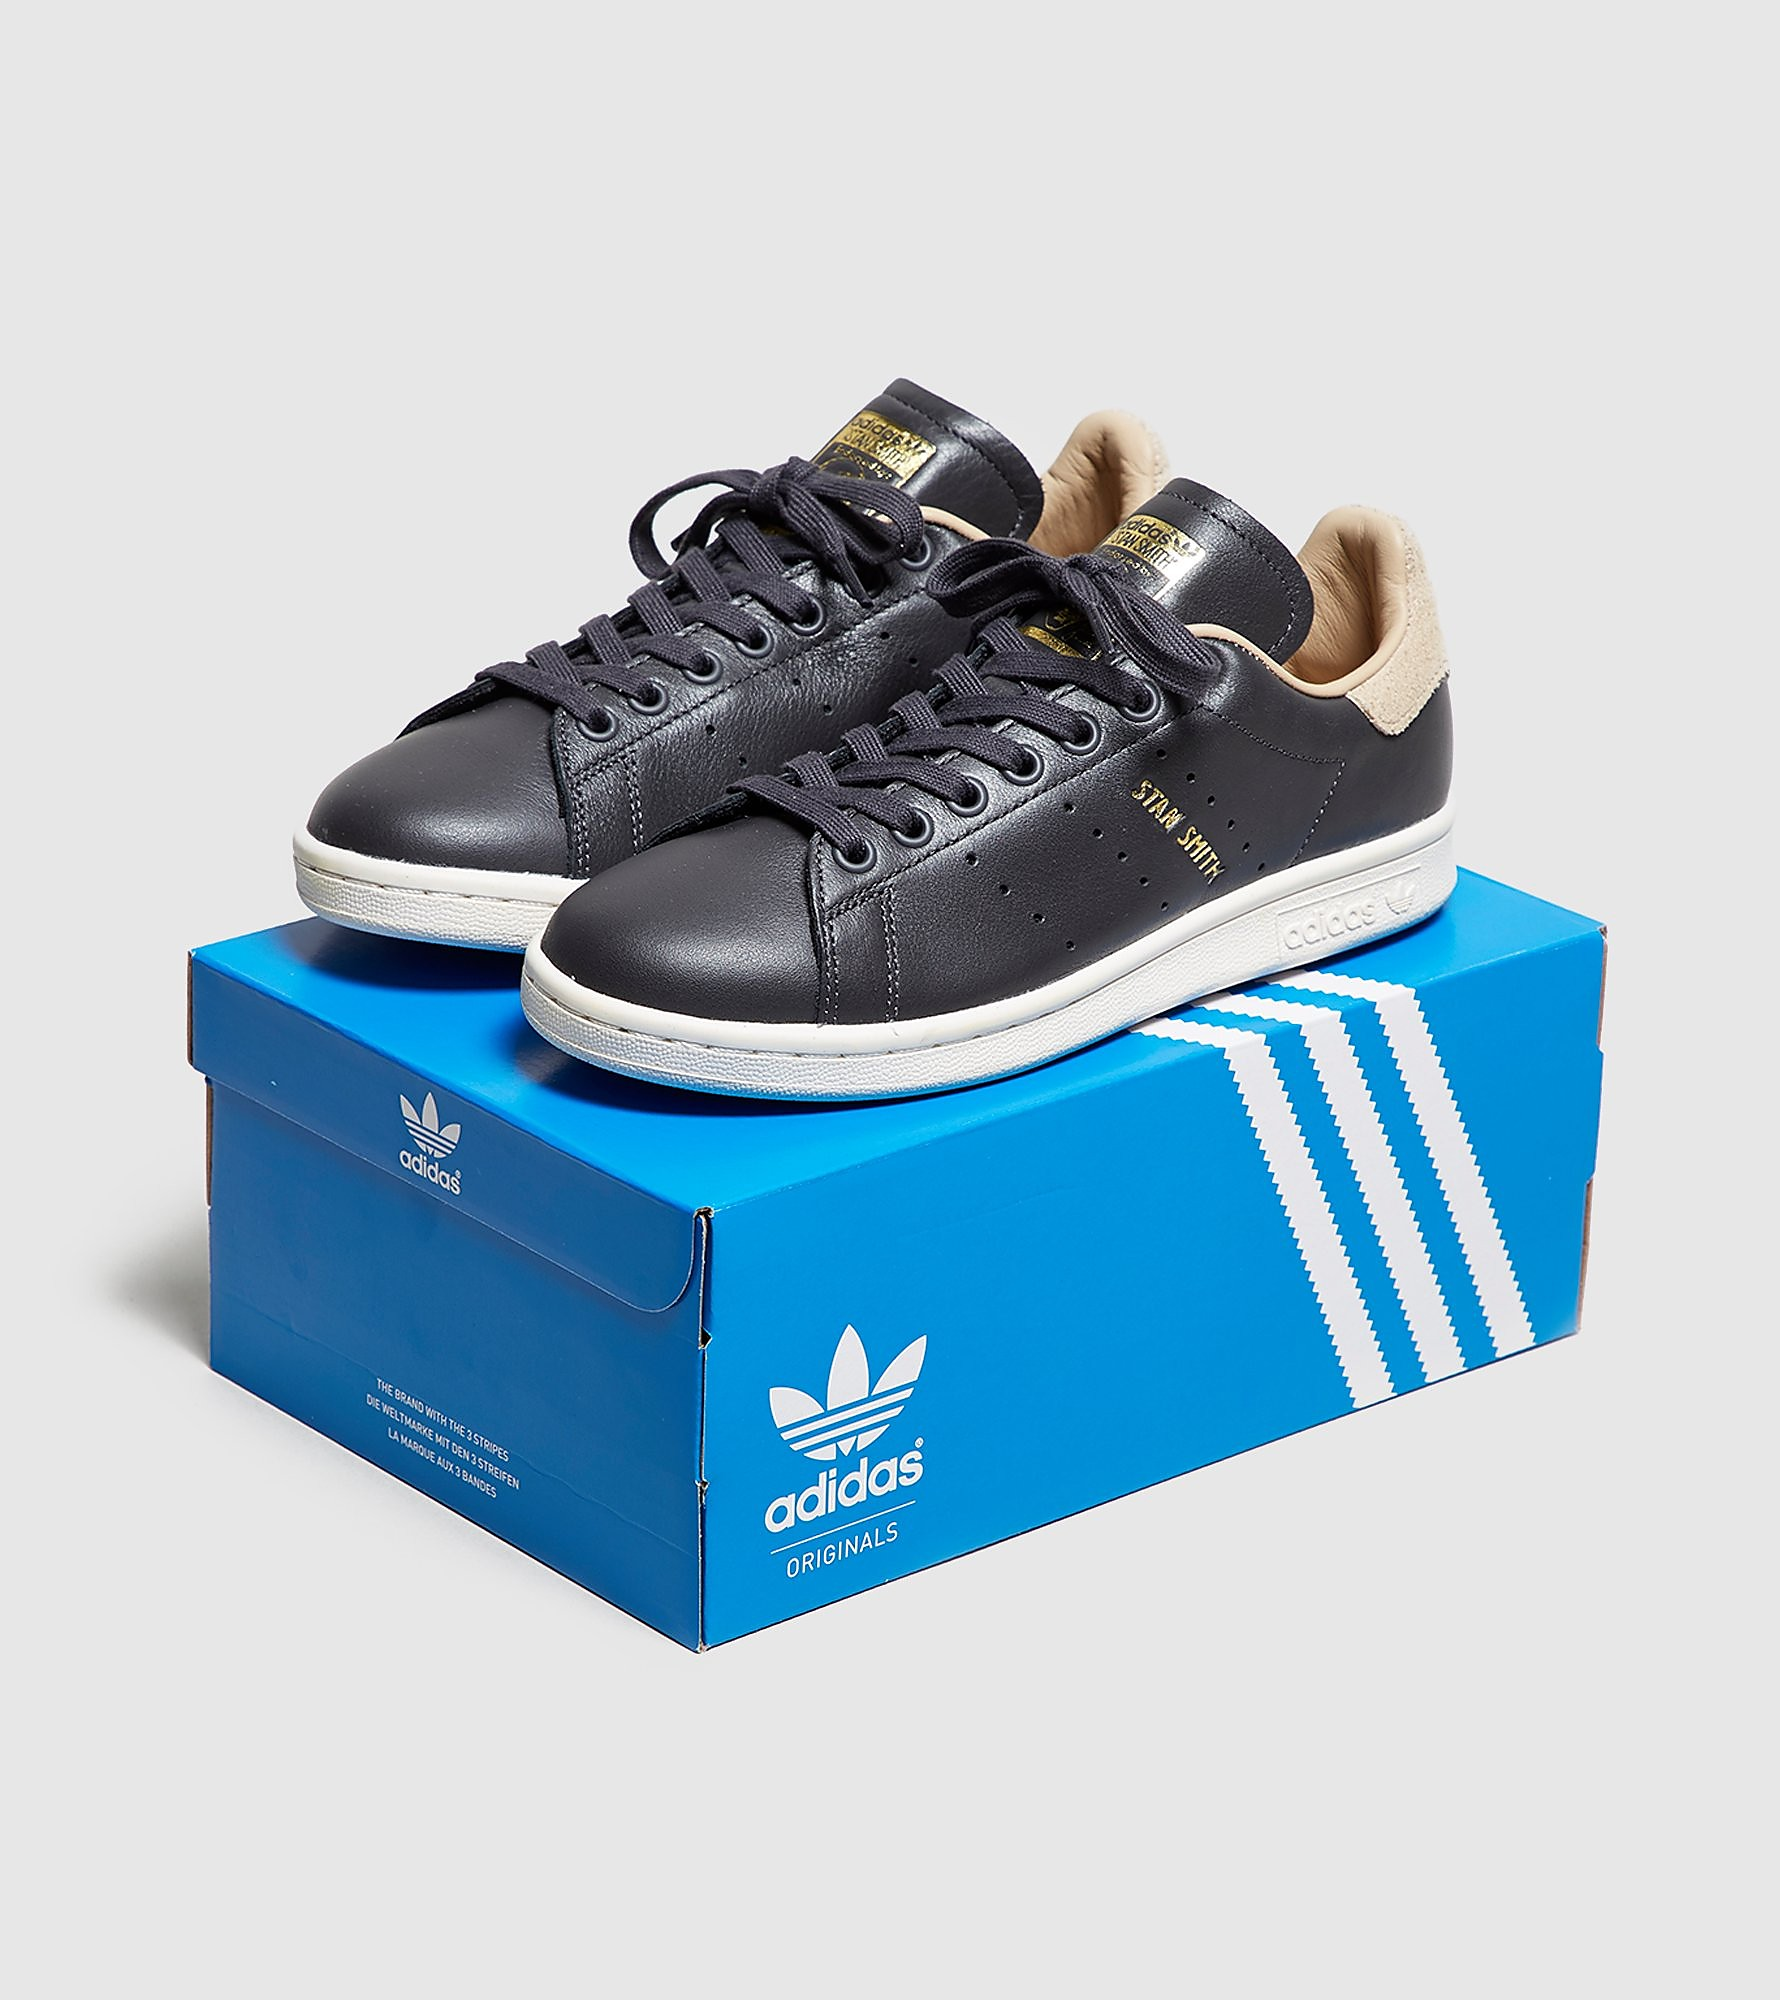 adidas Originals Stan Smith Premium Women's